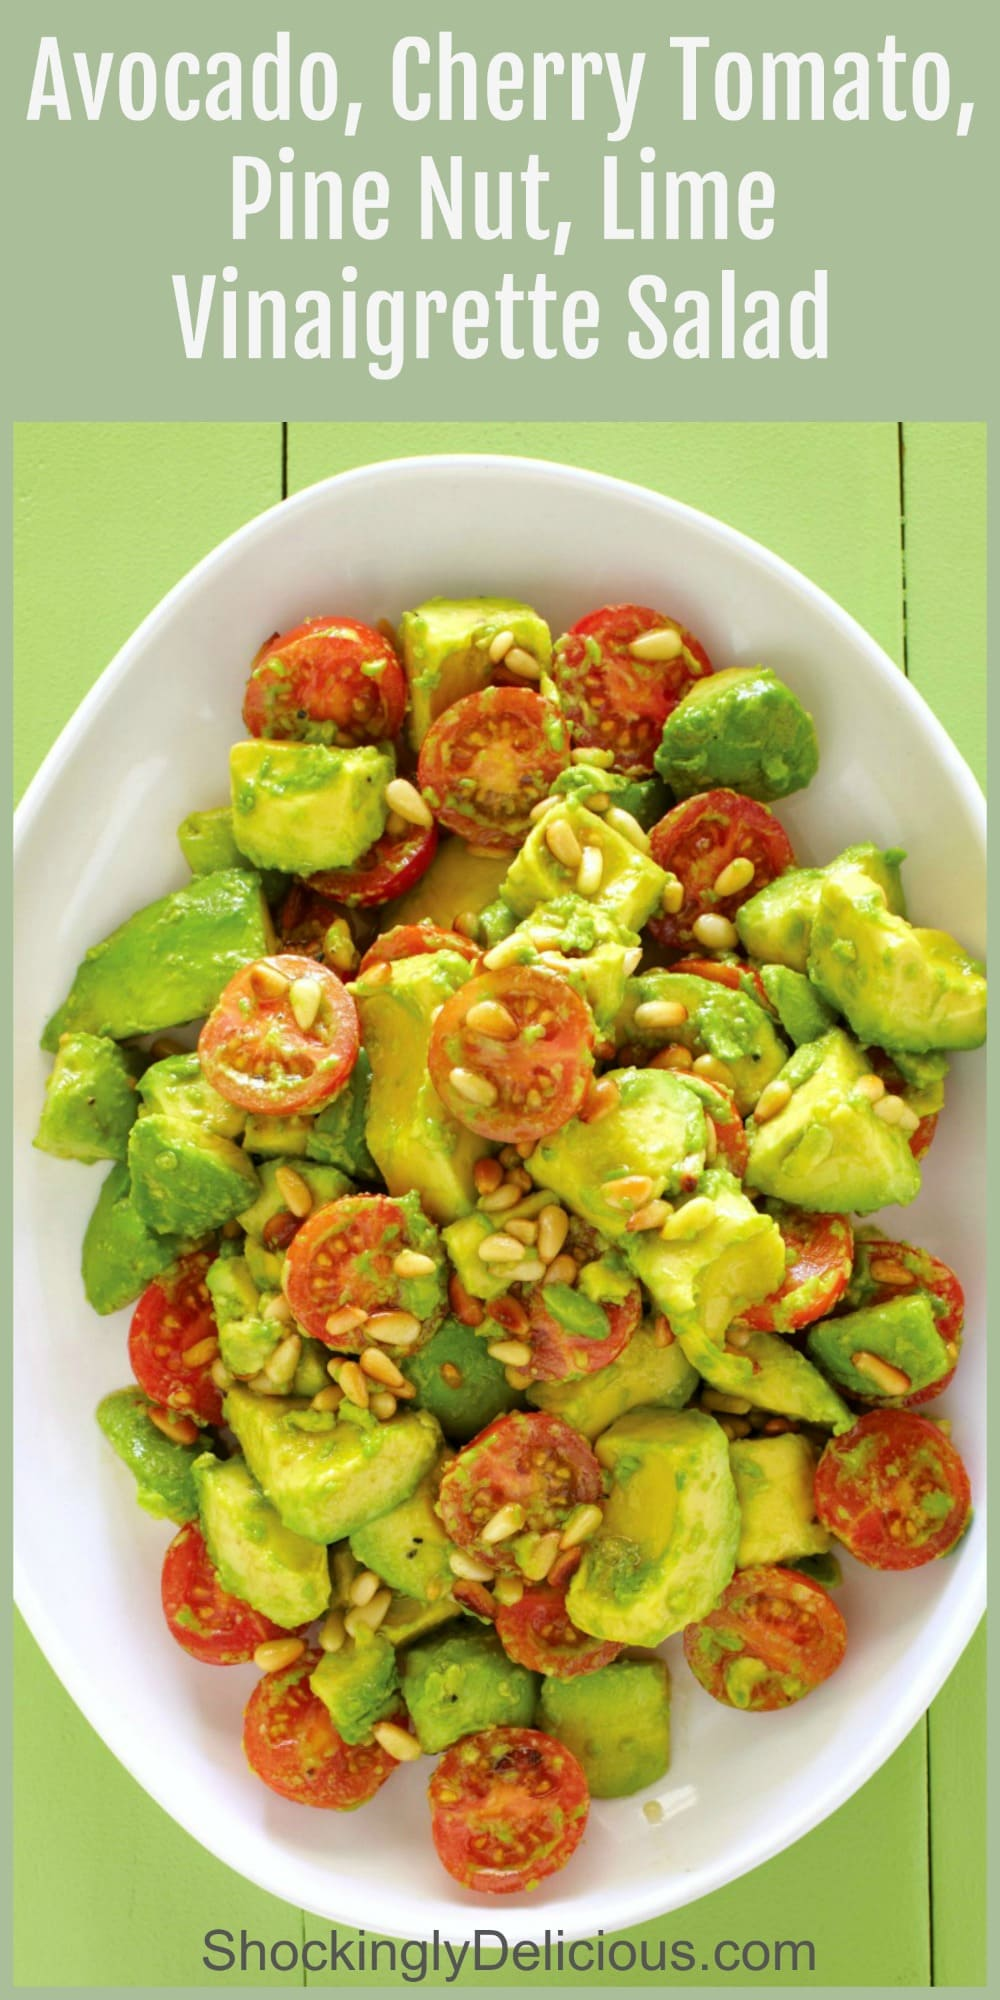 Avocado Cherry Tomato Salad on a large white platter on a greeen background